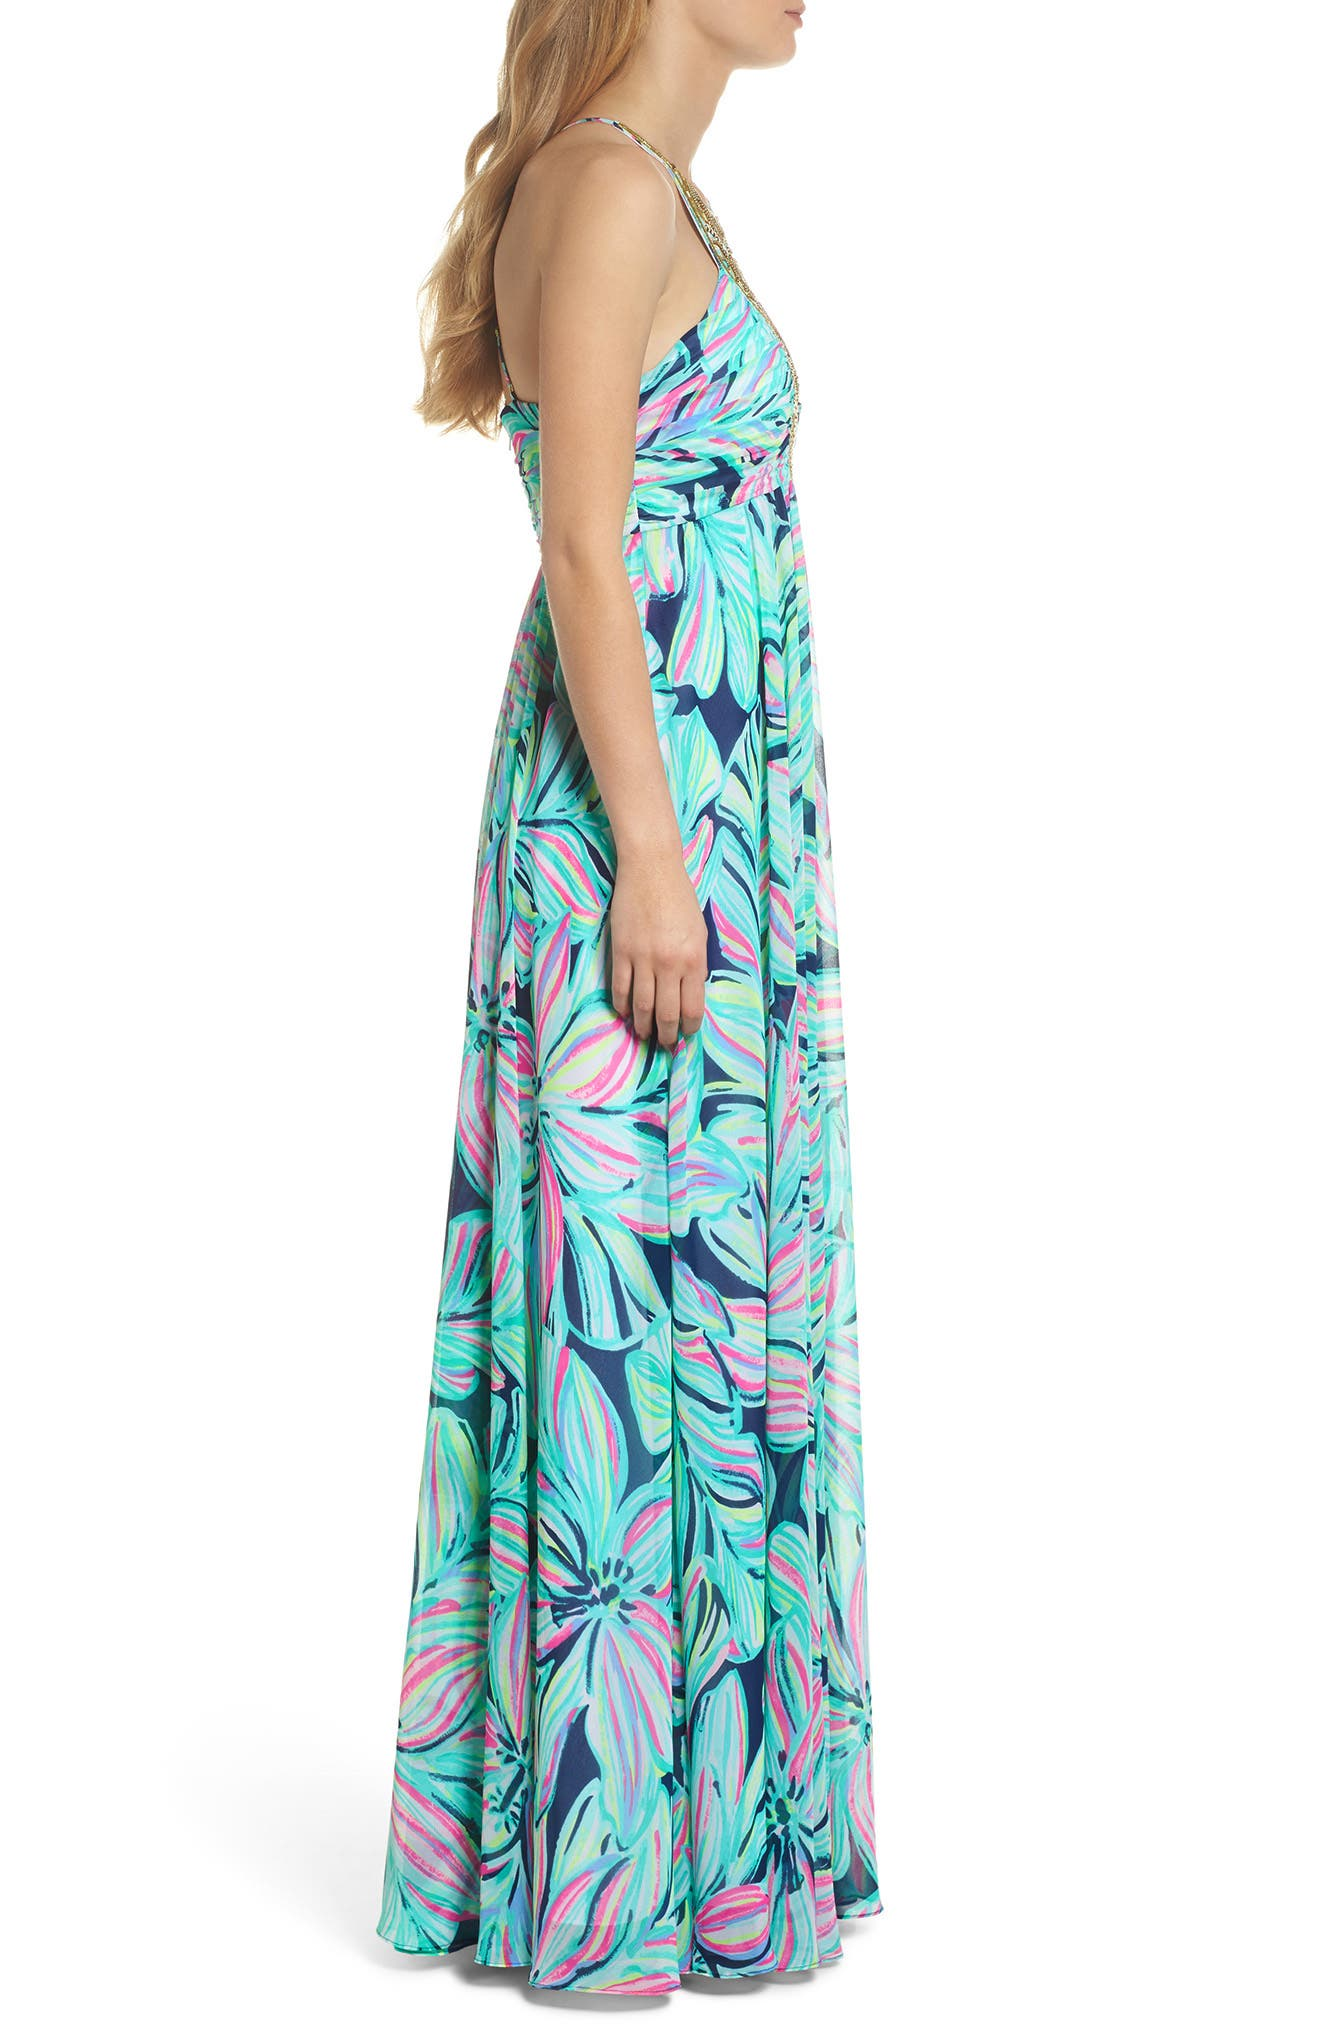 Lannette Embellished Chiffon Maxi Dress,                             Alternate thumbnail 3, color,                             High Tide Dancing Lady